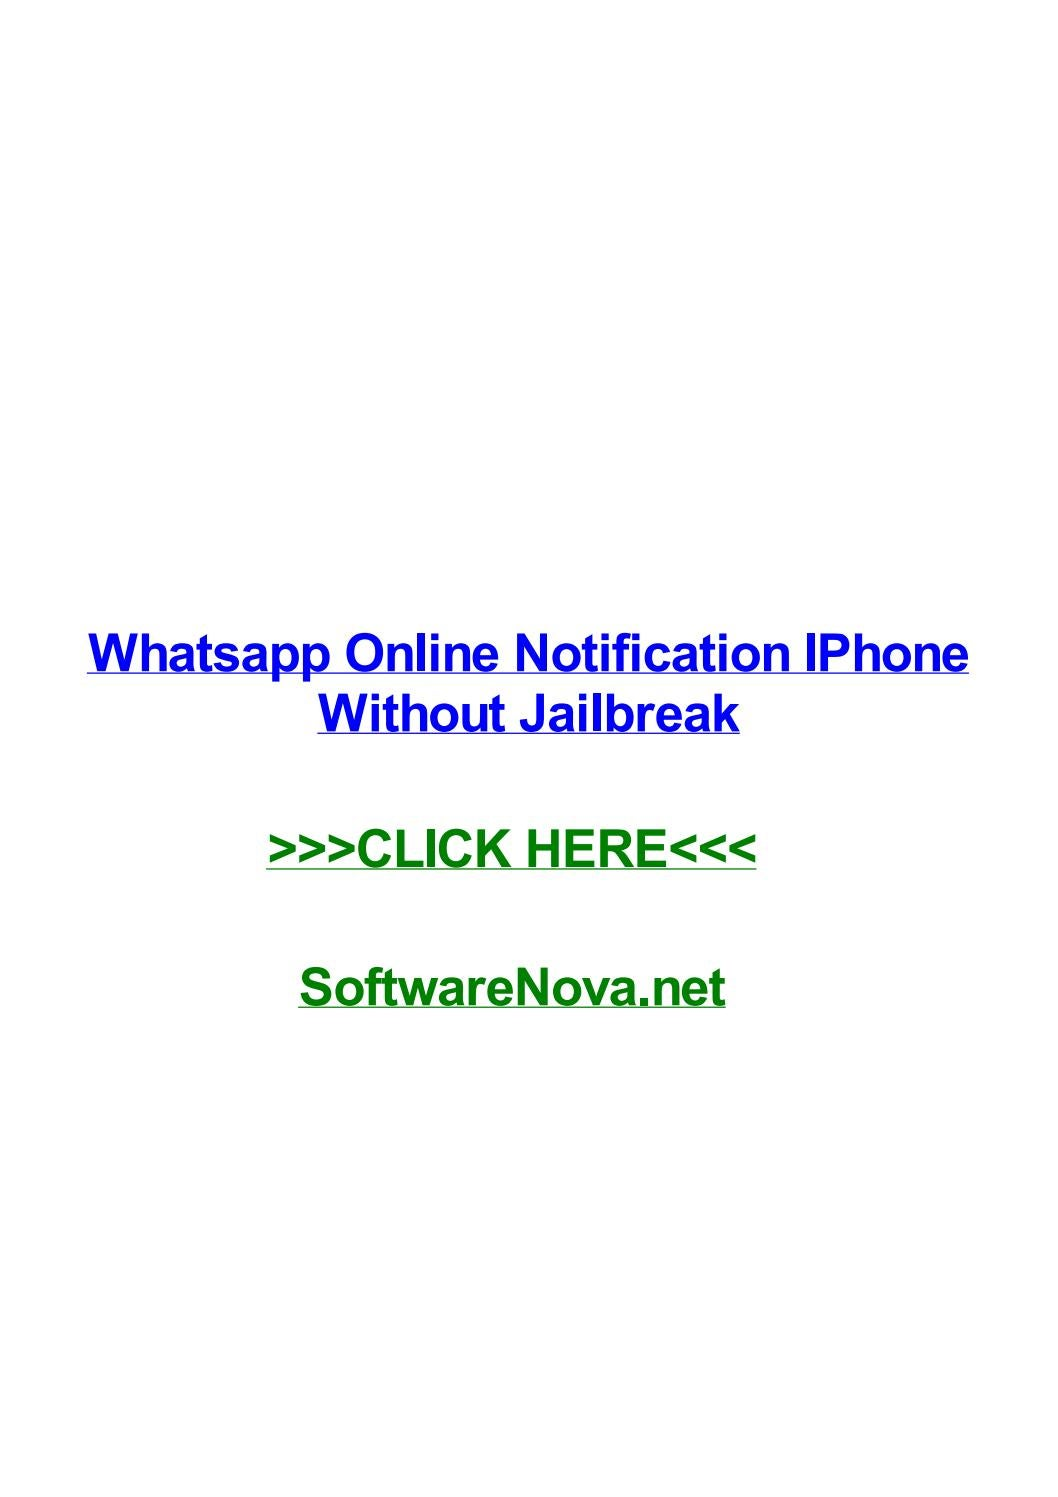 Whatsapp online notification iphone without jailbreak by